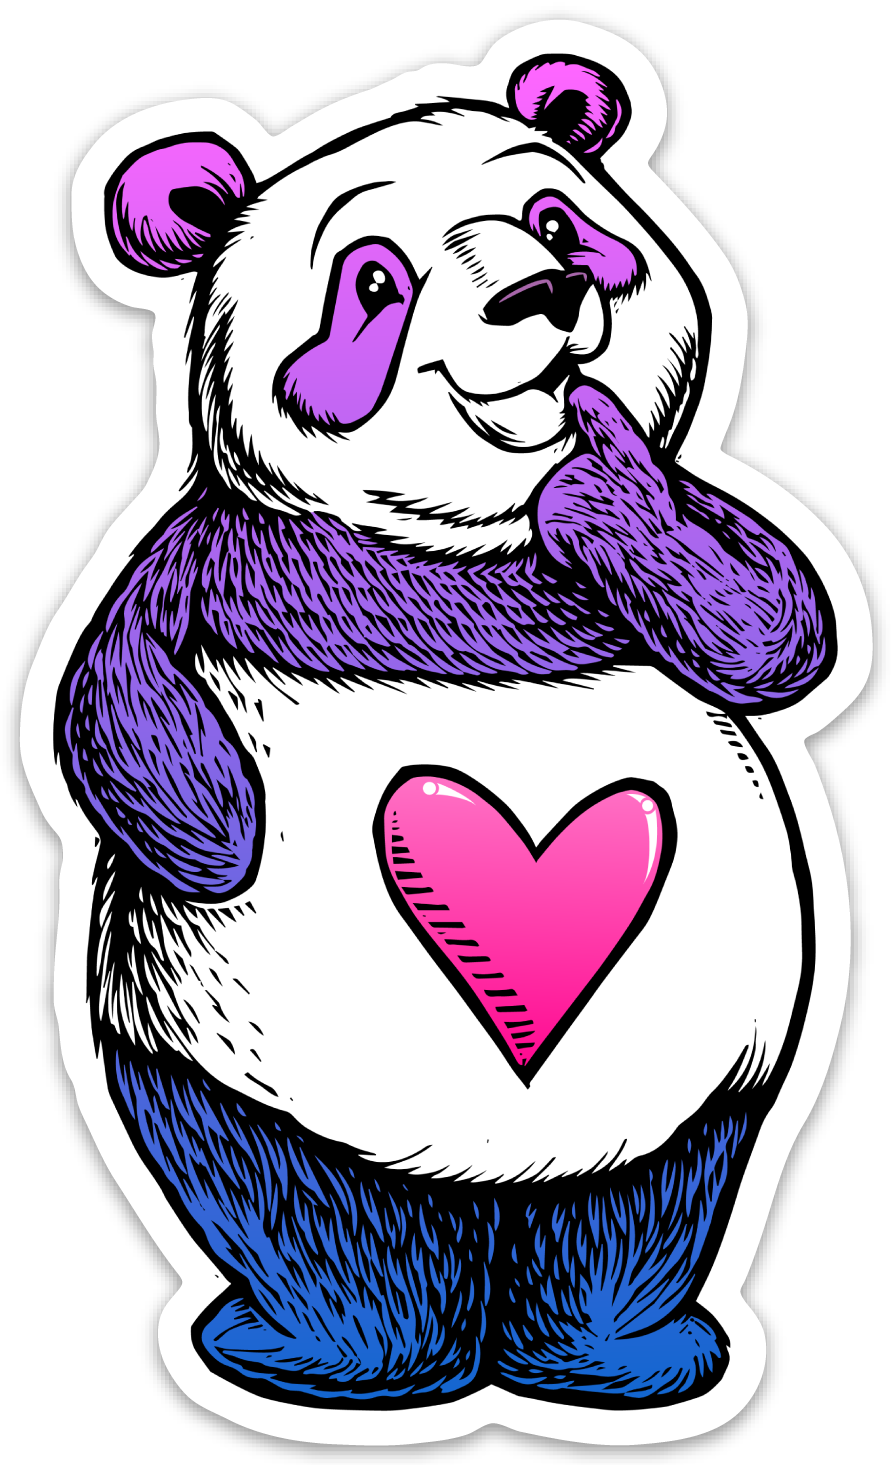 Cute Thinking Panda Sticker